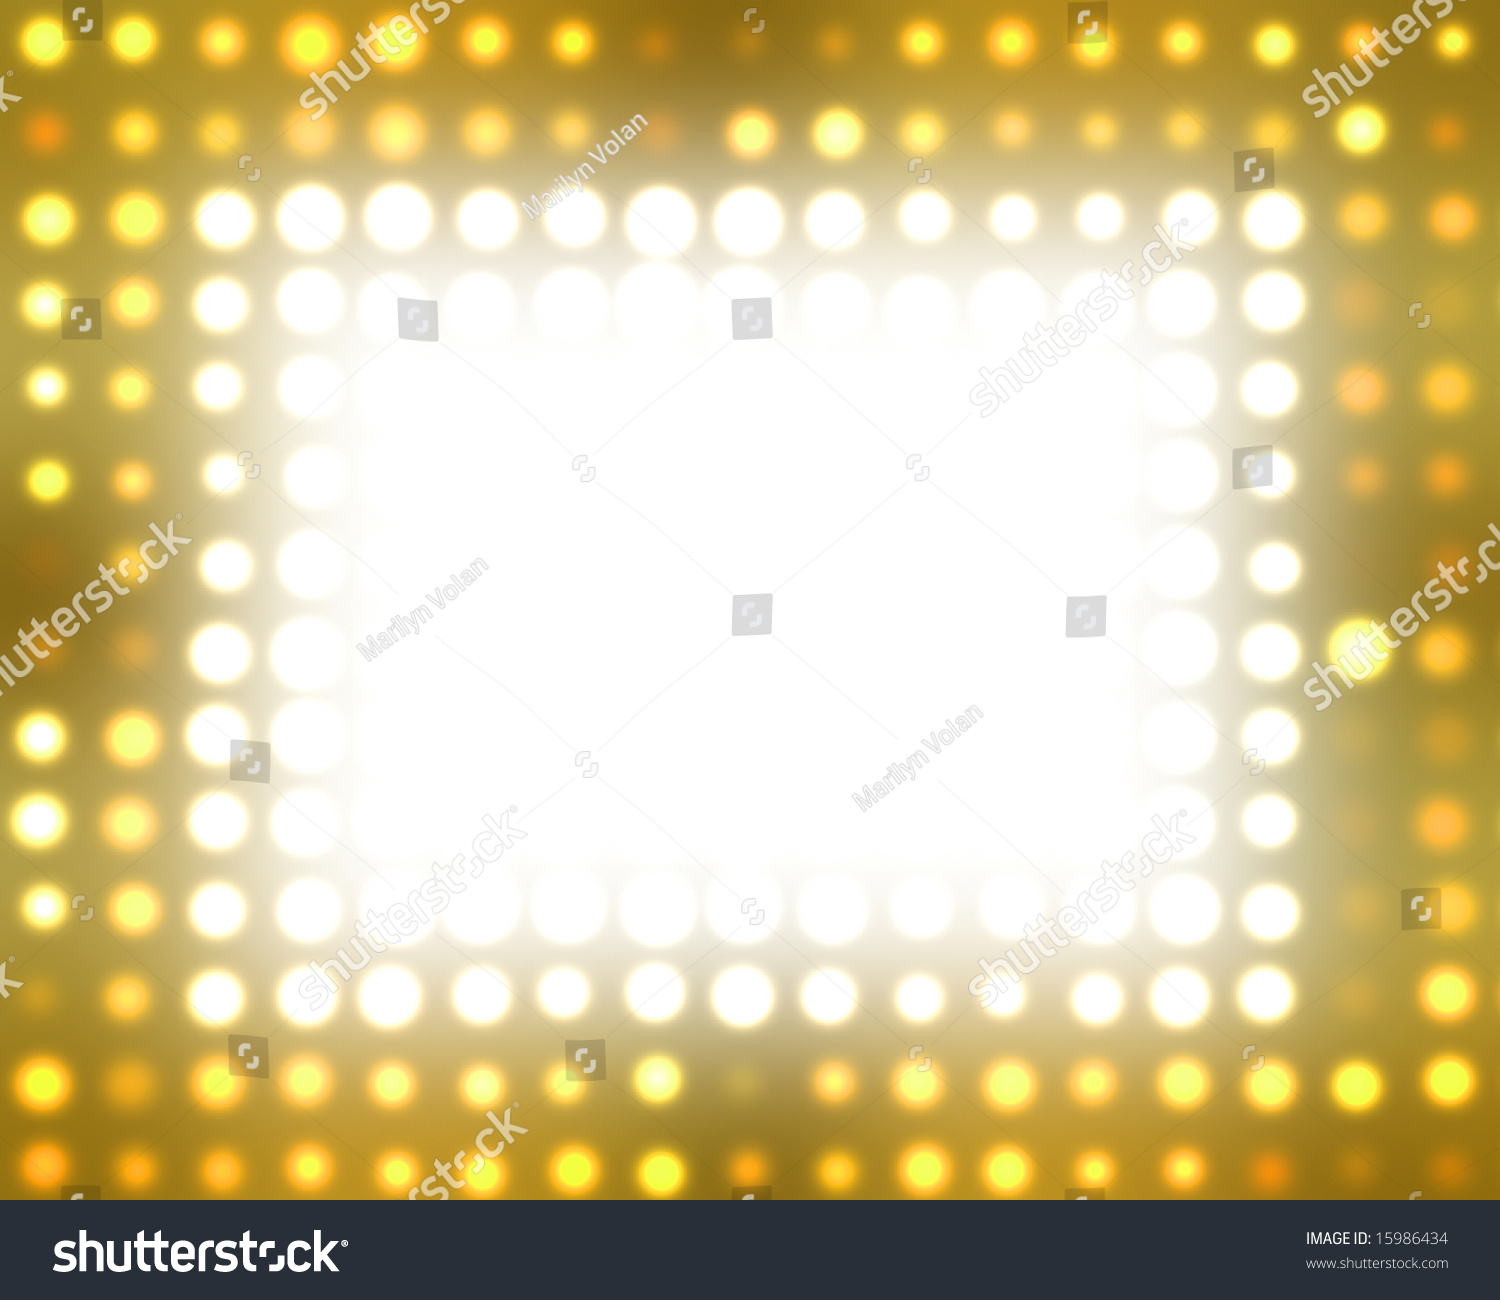 Theater Lights Background: Theater Marquee Lights Stock Photo 15986434 : Shutterstock